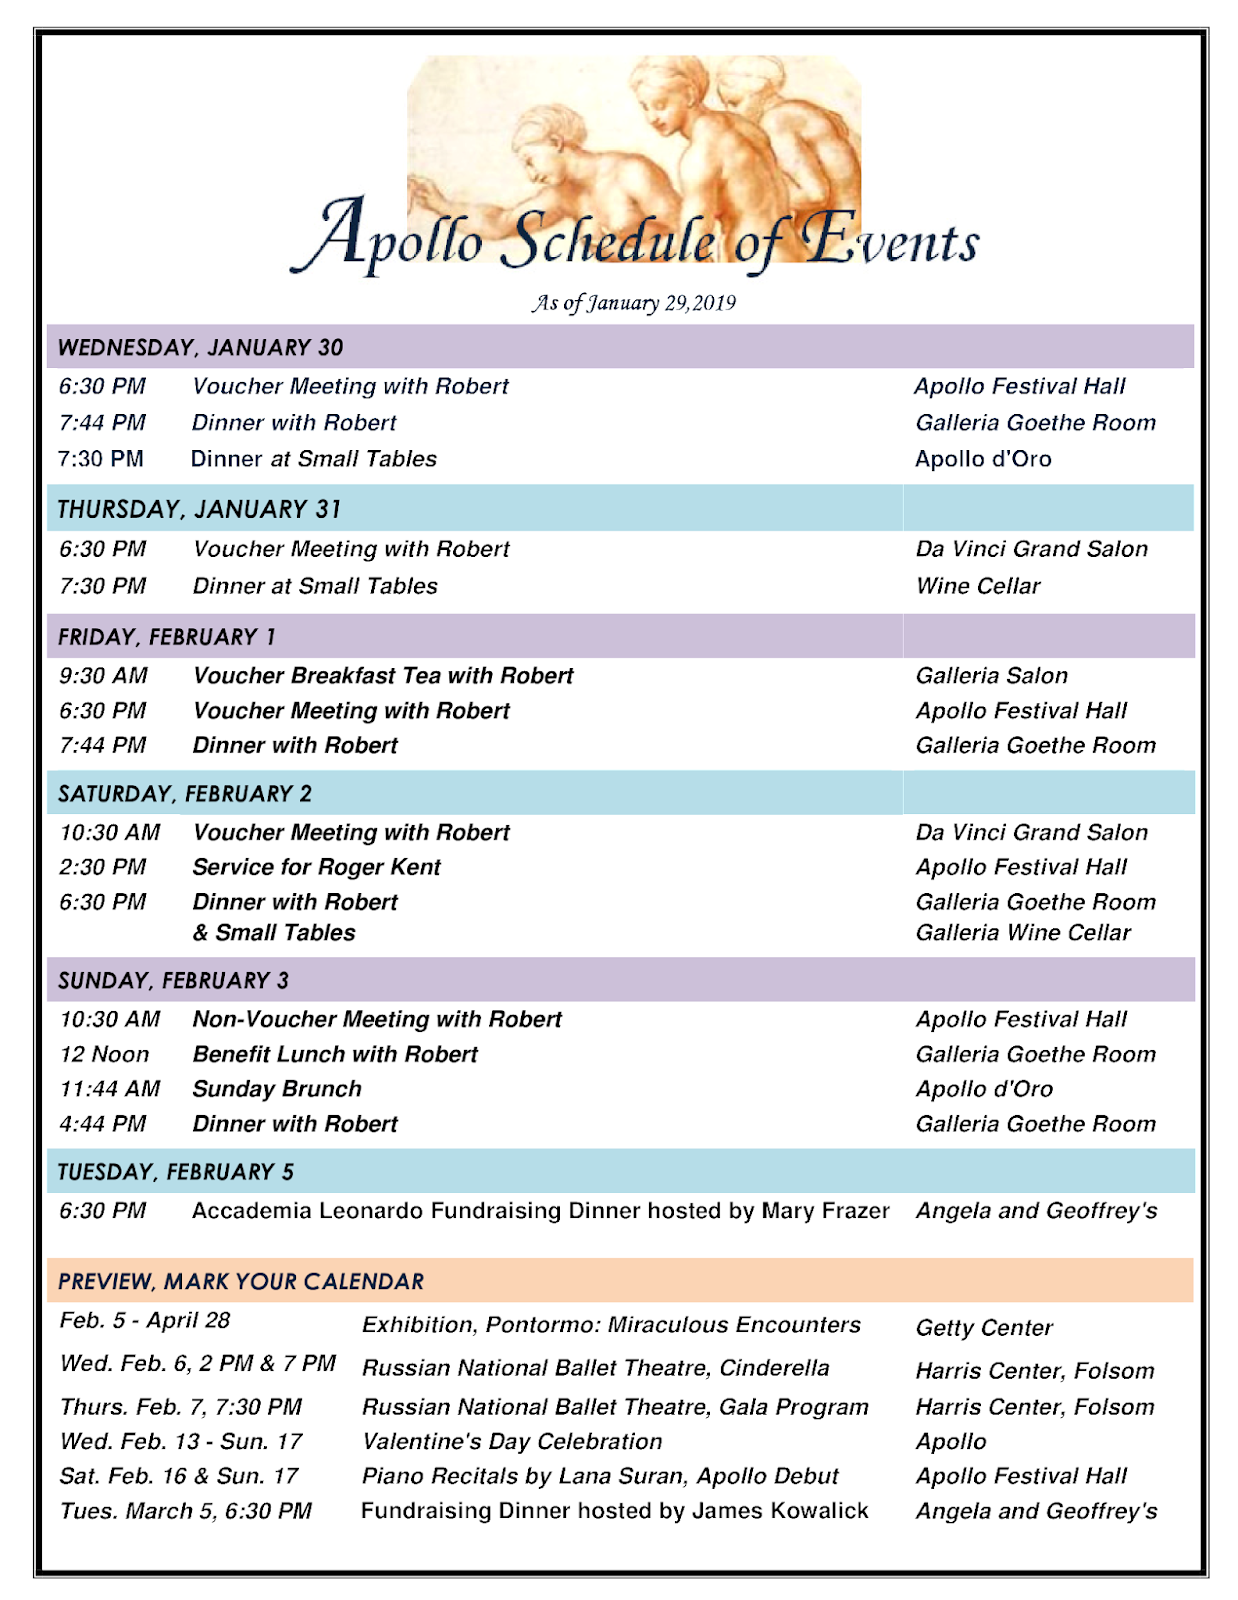 Robert Earl Burton's Fellowship of Friends cult fundraising Apollo Schedule of Events